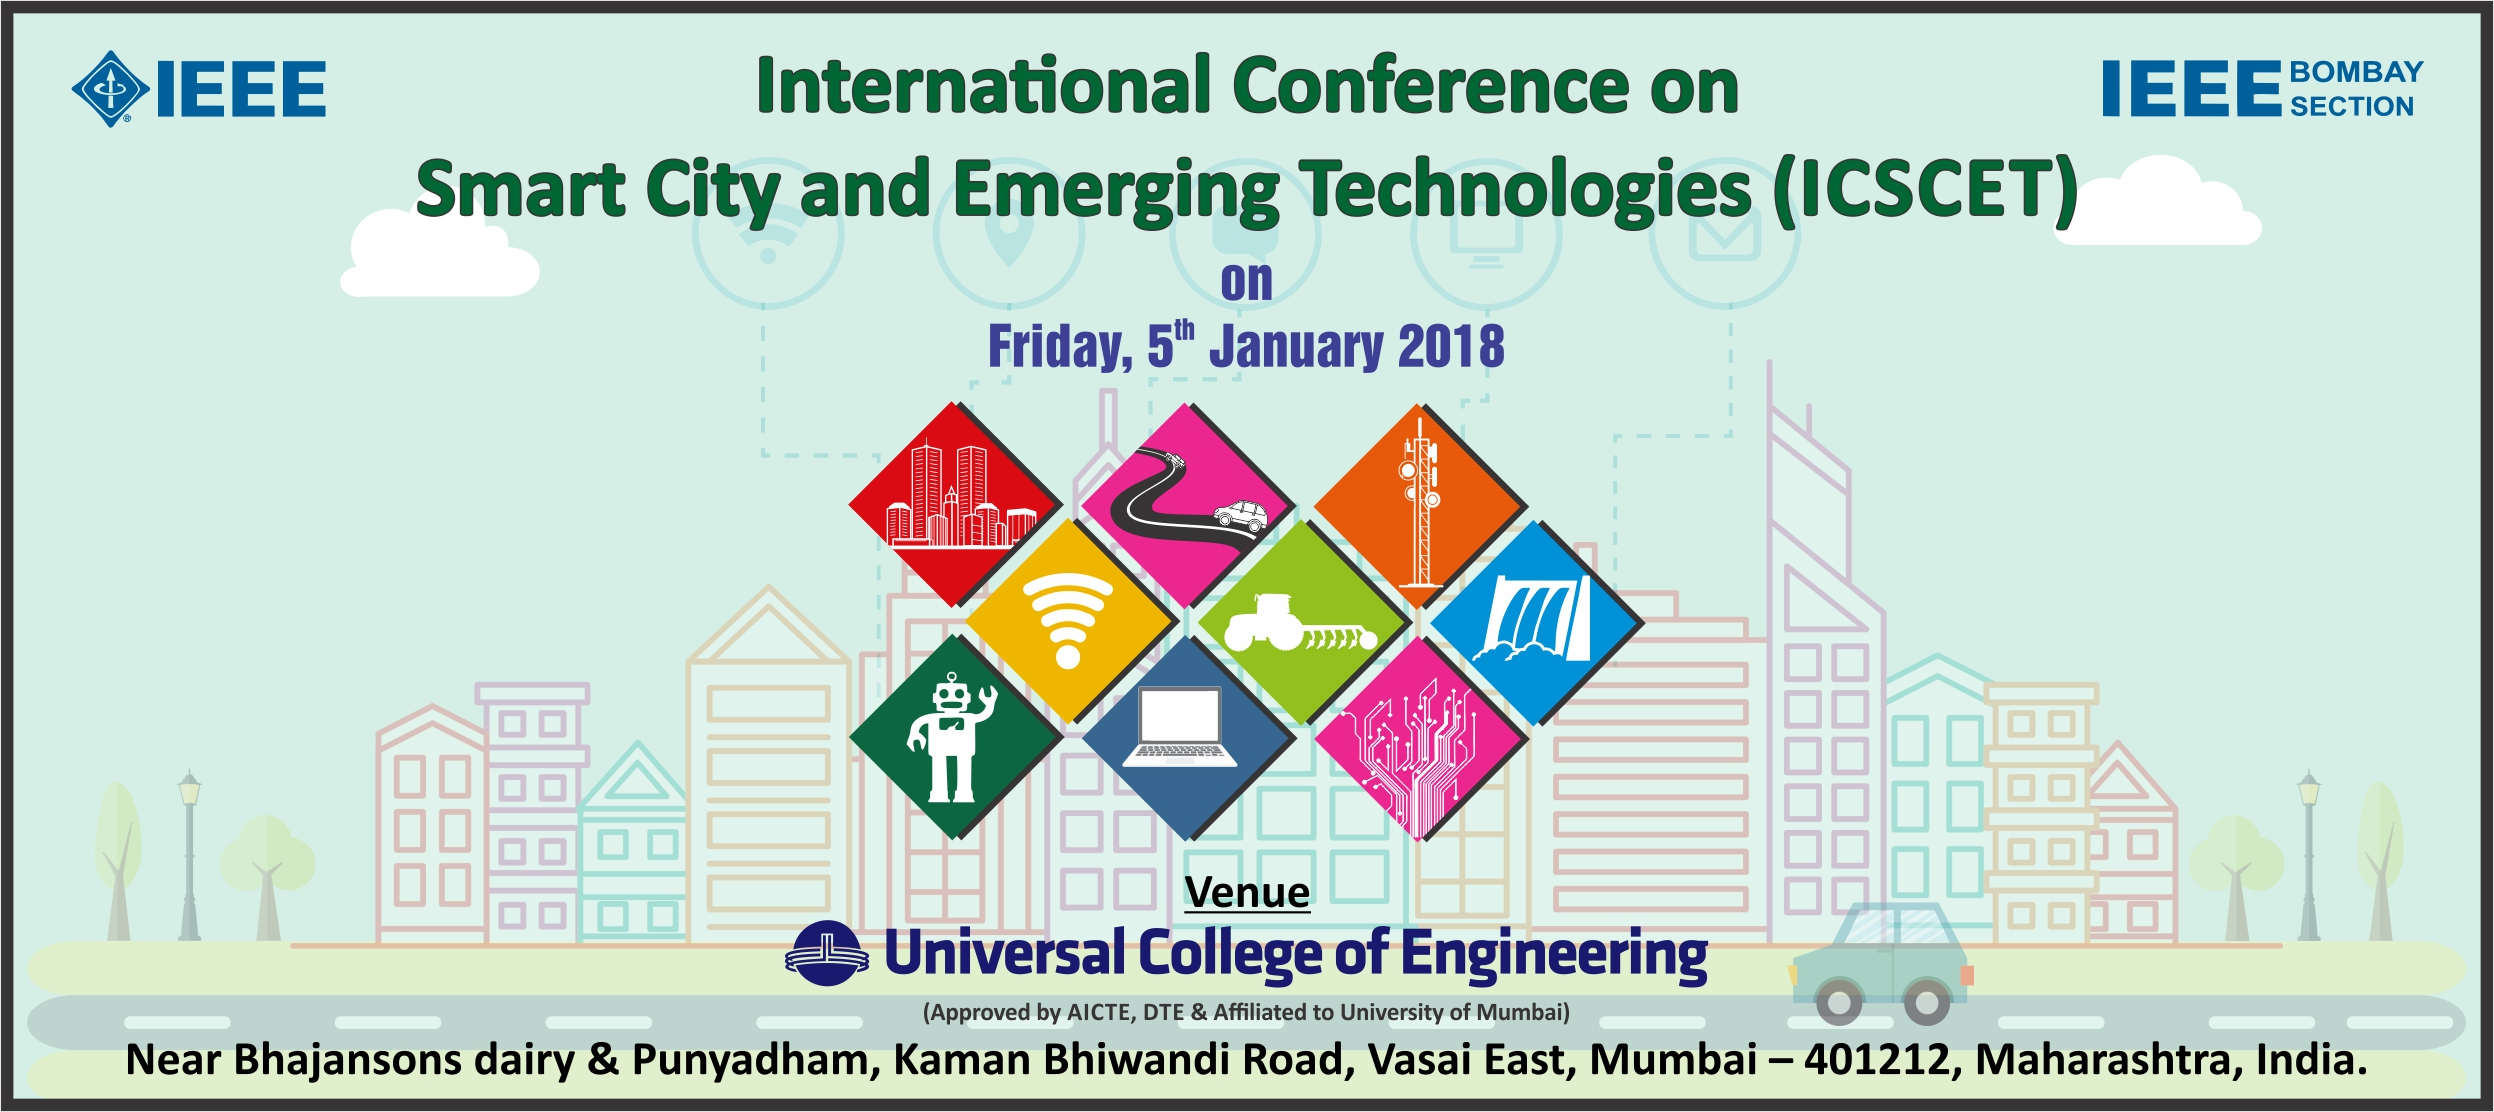 IEEE conference in Mumbai, India